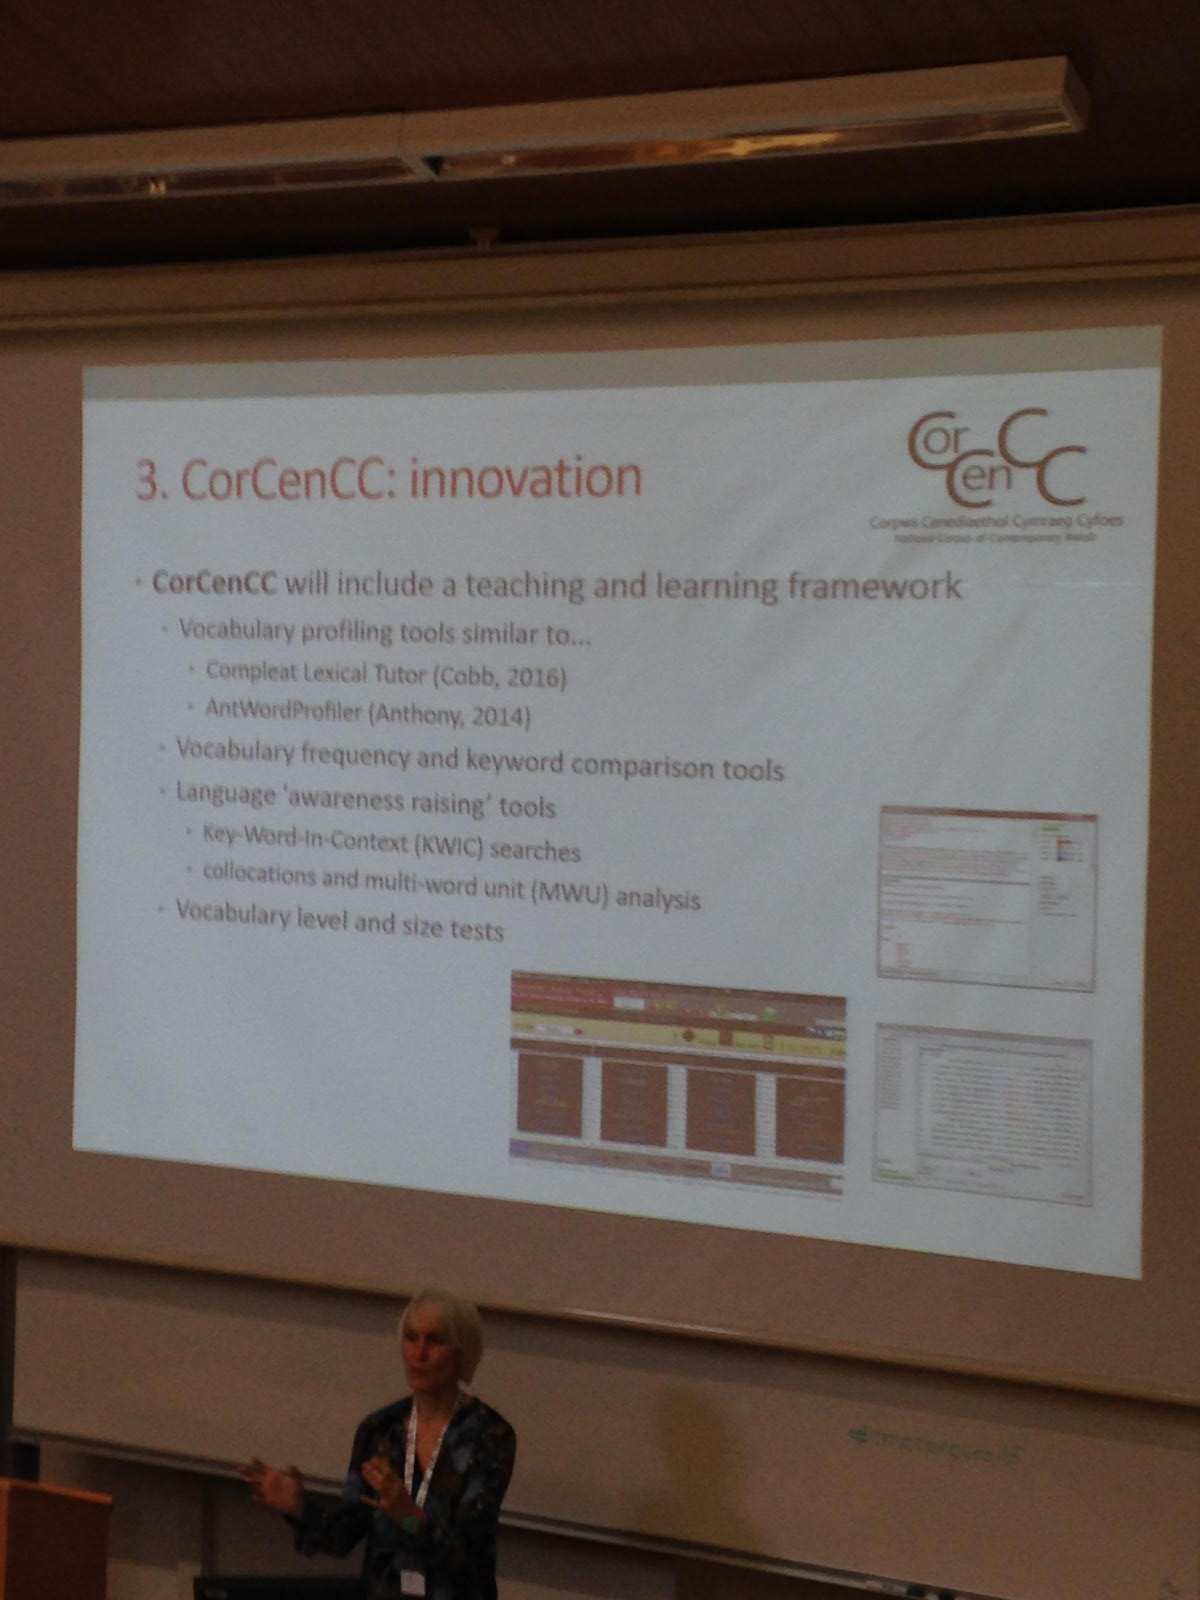 #cmccorpora16 a great project for contemporary Welsh : CorCenCC https://t.co/gLCDyeFHbQ